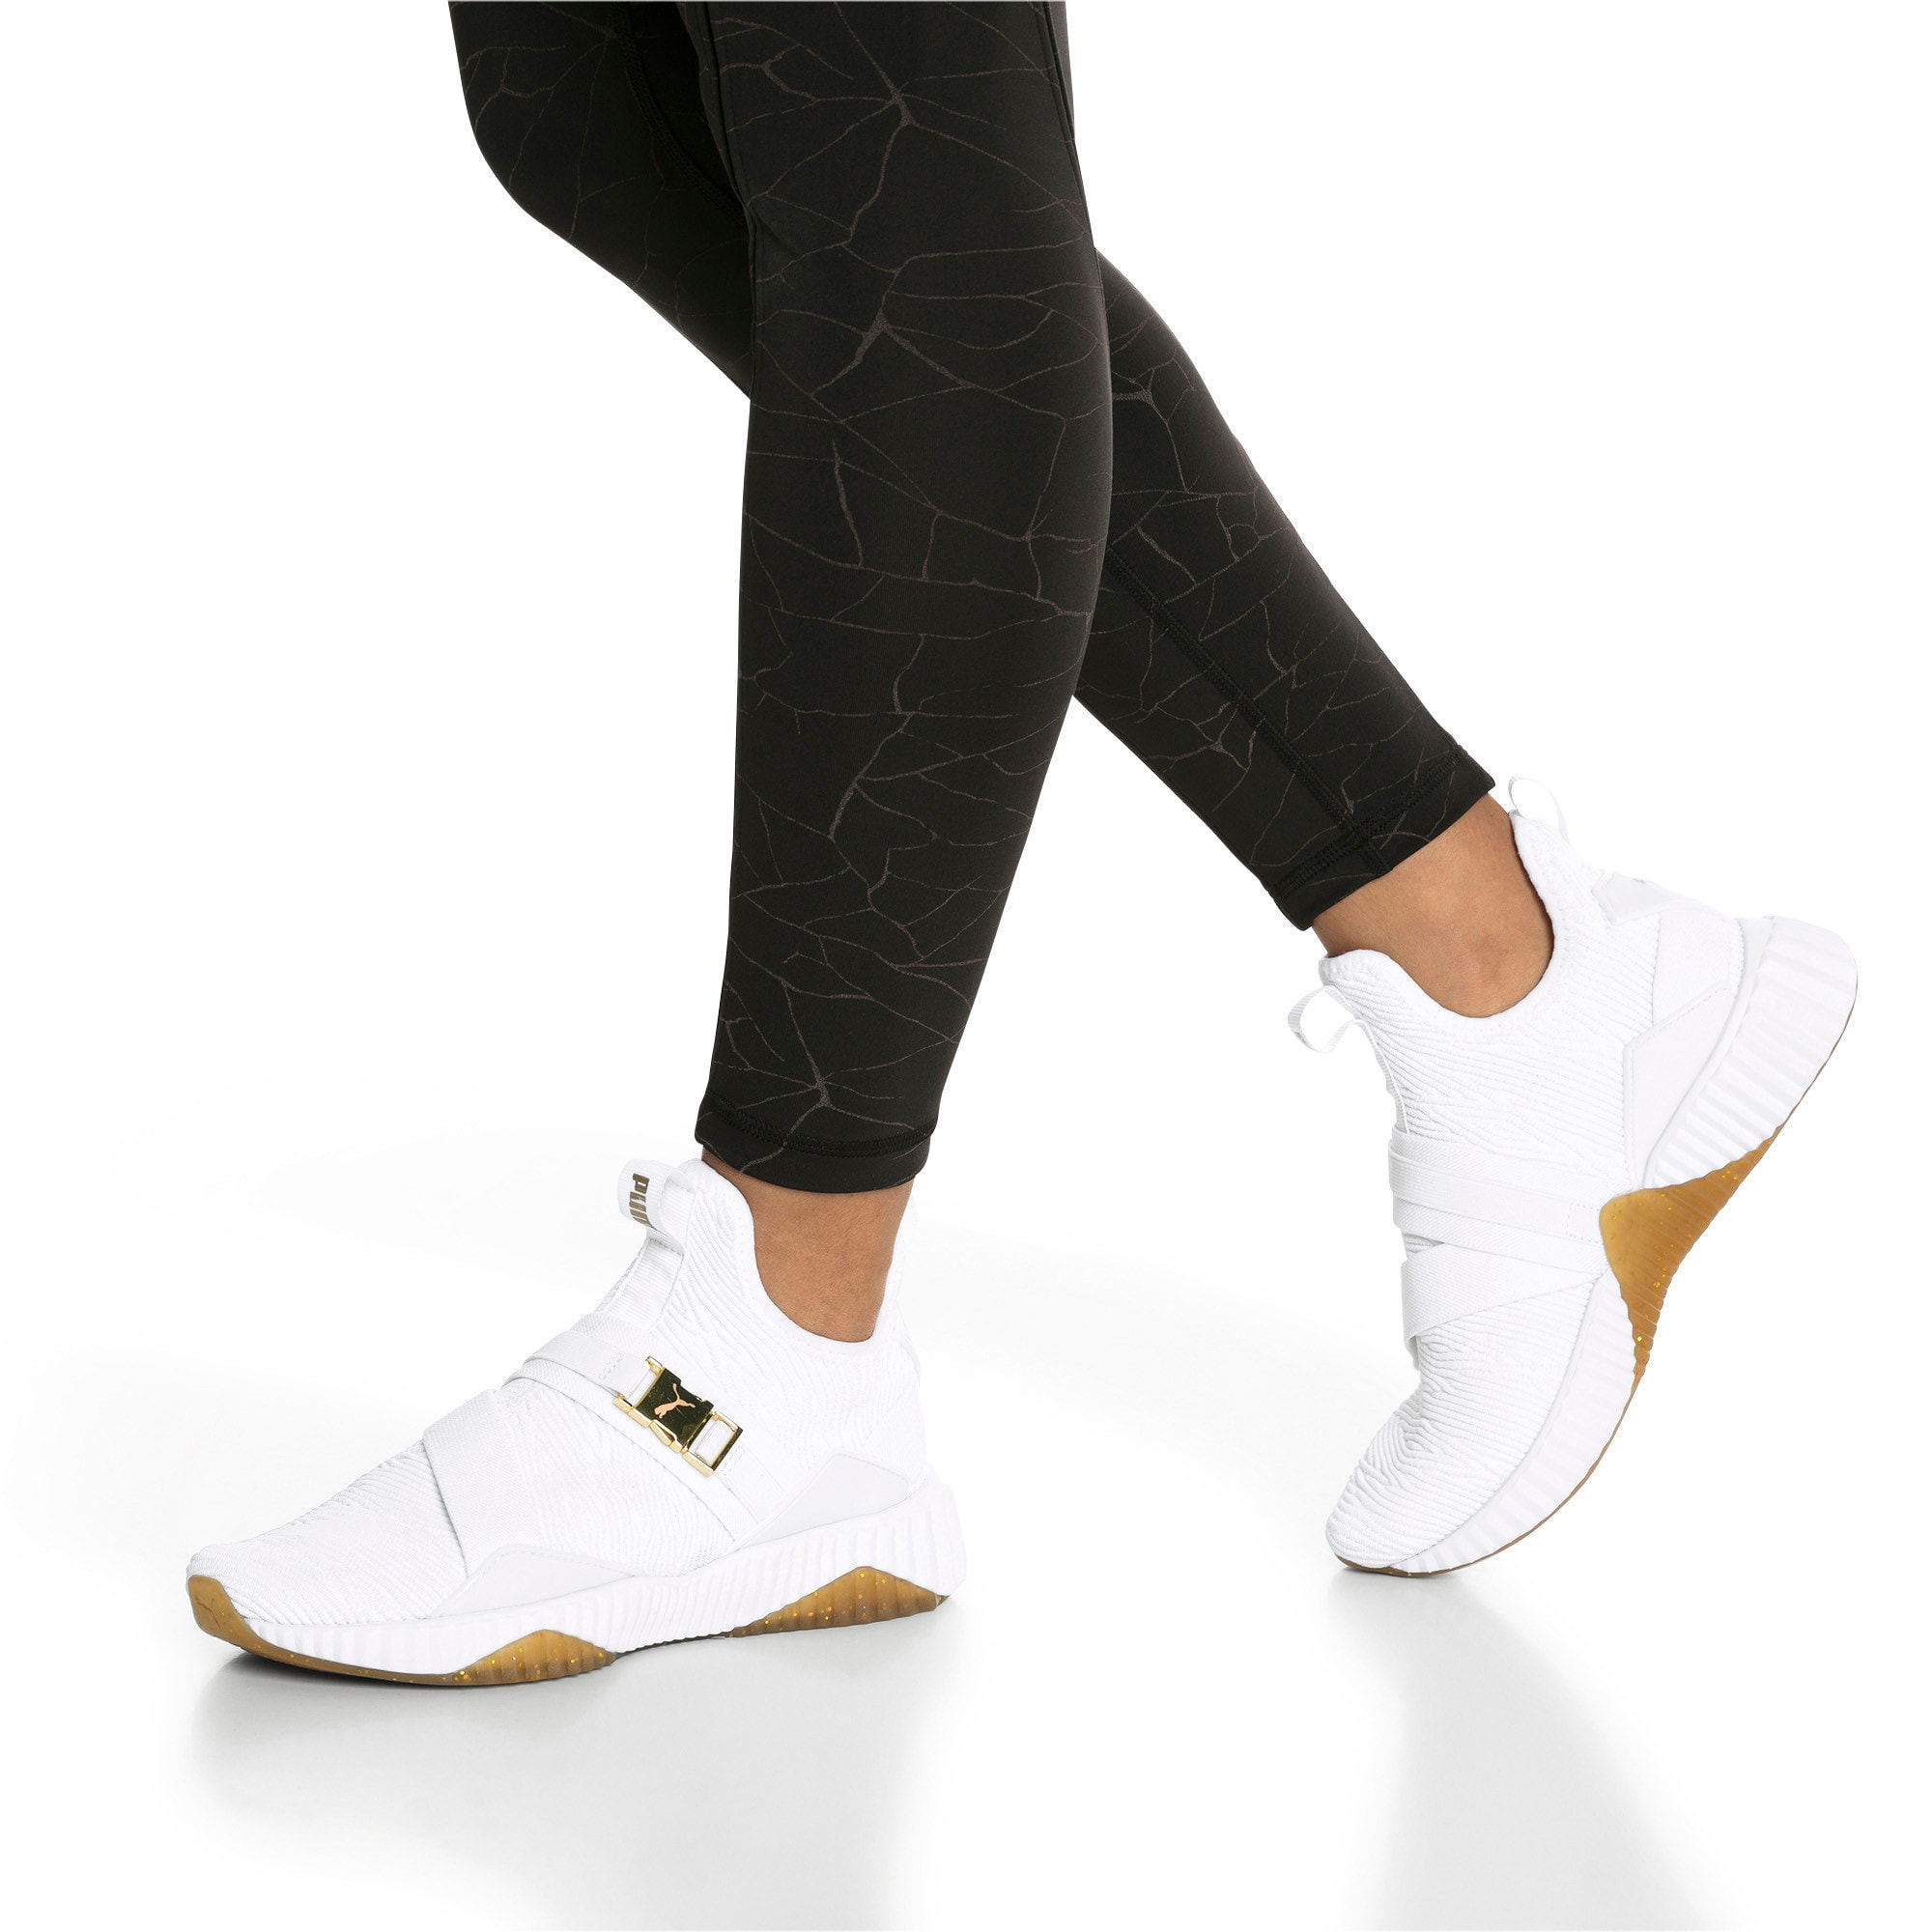 Thumbnail 2 of Defy Varsity Mid Women's Trainers, Puma White-Metallic Gold, medium-IND